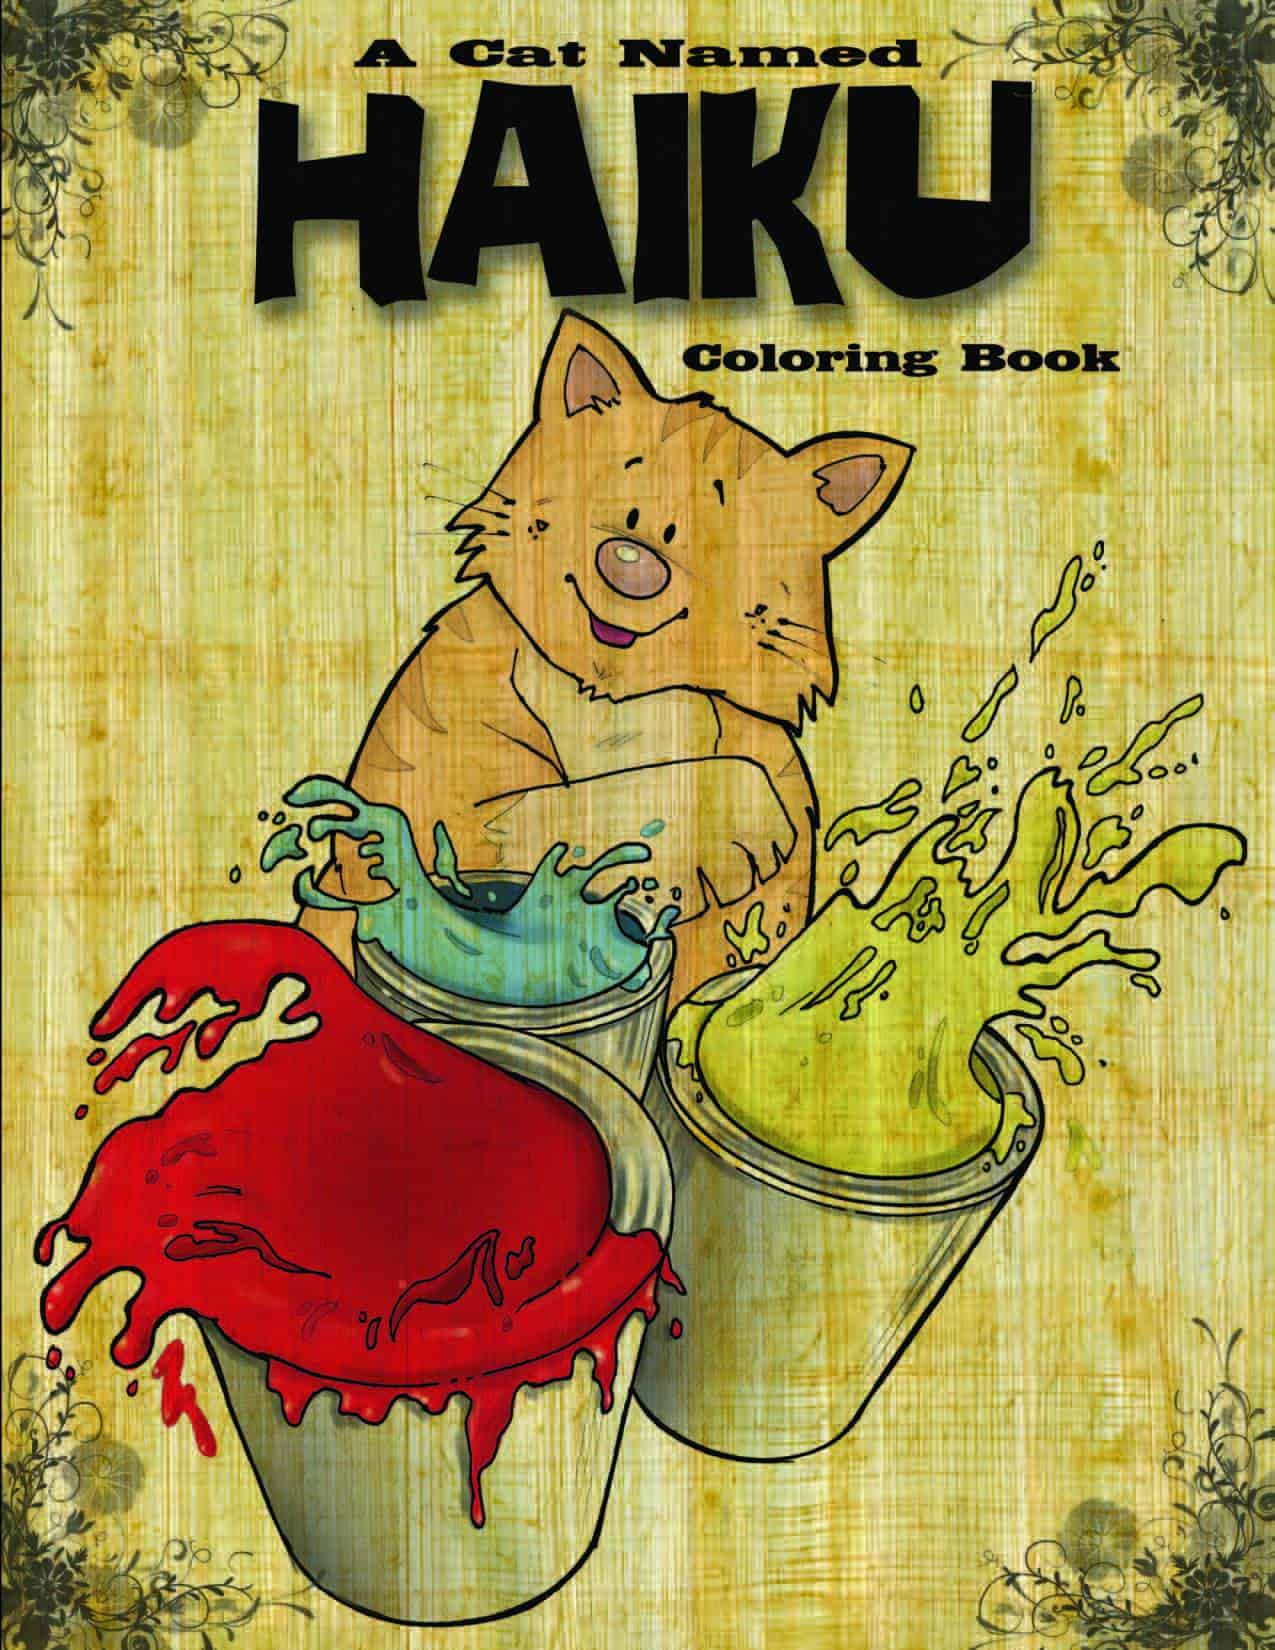 A Cat Named Haiku Coloring Book 2